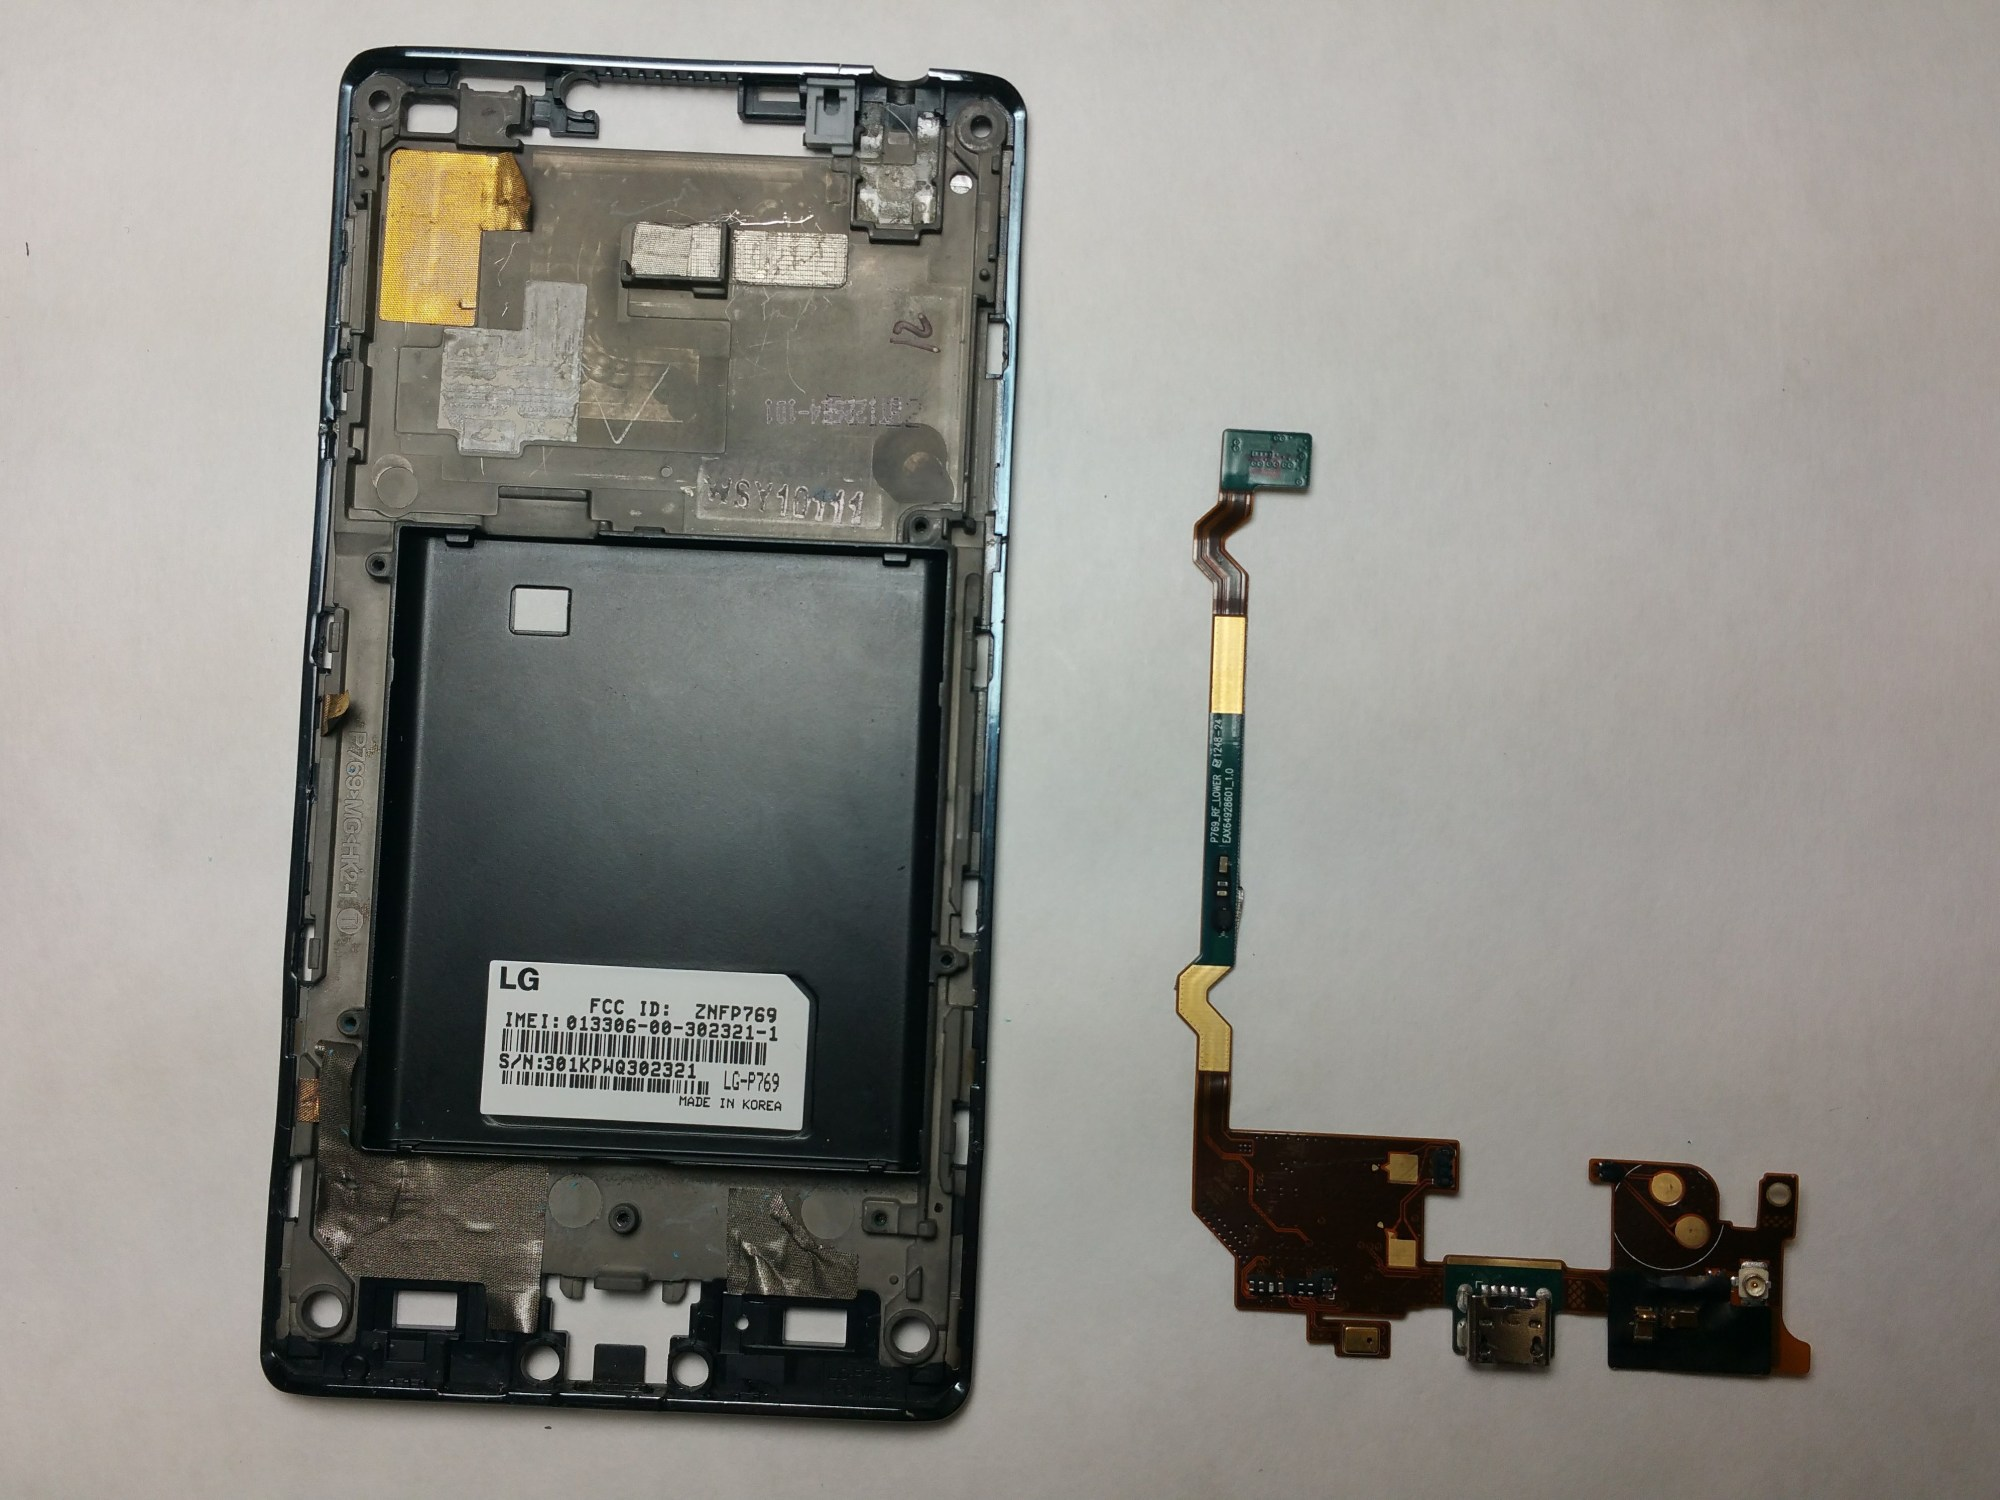 hight resolution of lg optimus l9 p769 micro usb port replacement ifixit repair guide